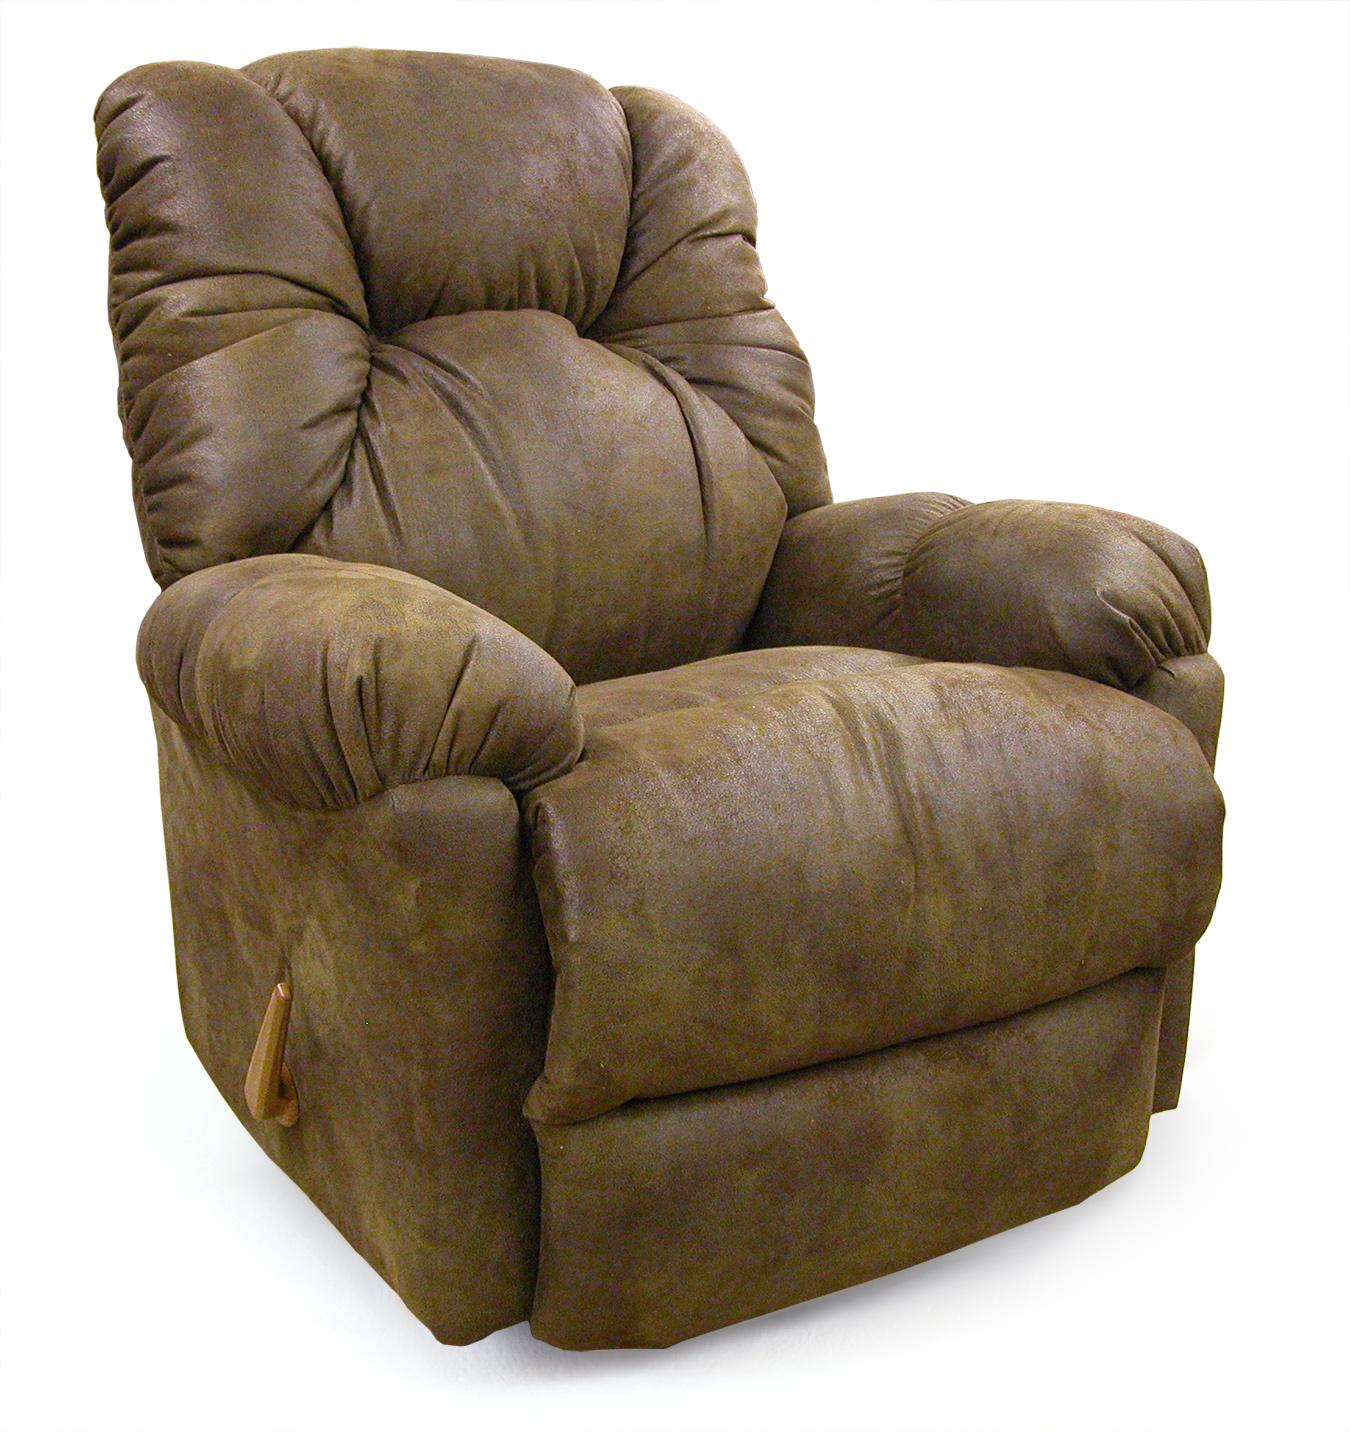 Best Home Furnishings Recliners - Medium Romulus Rocker Recliner - Item Number: 9MW57